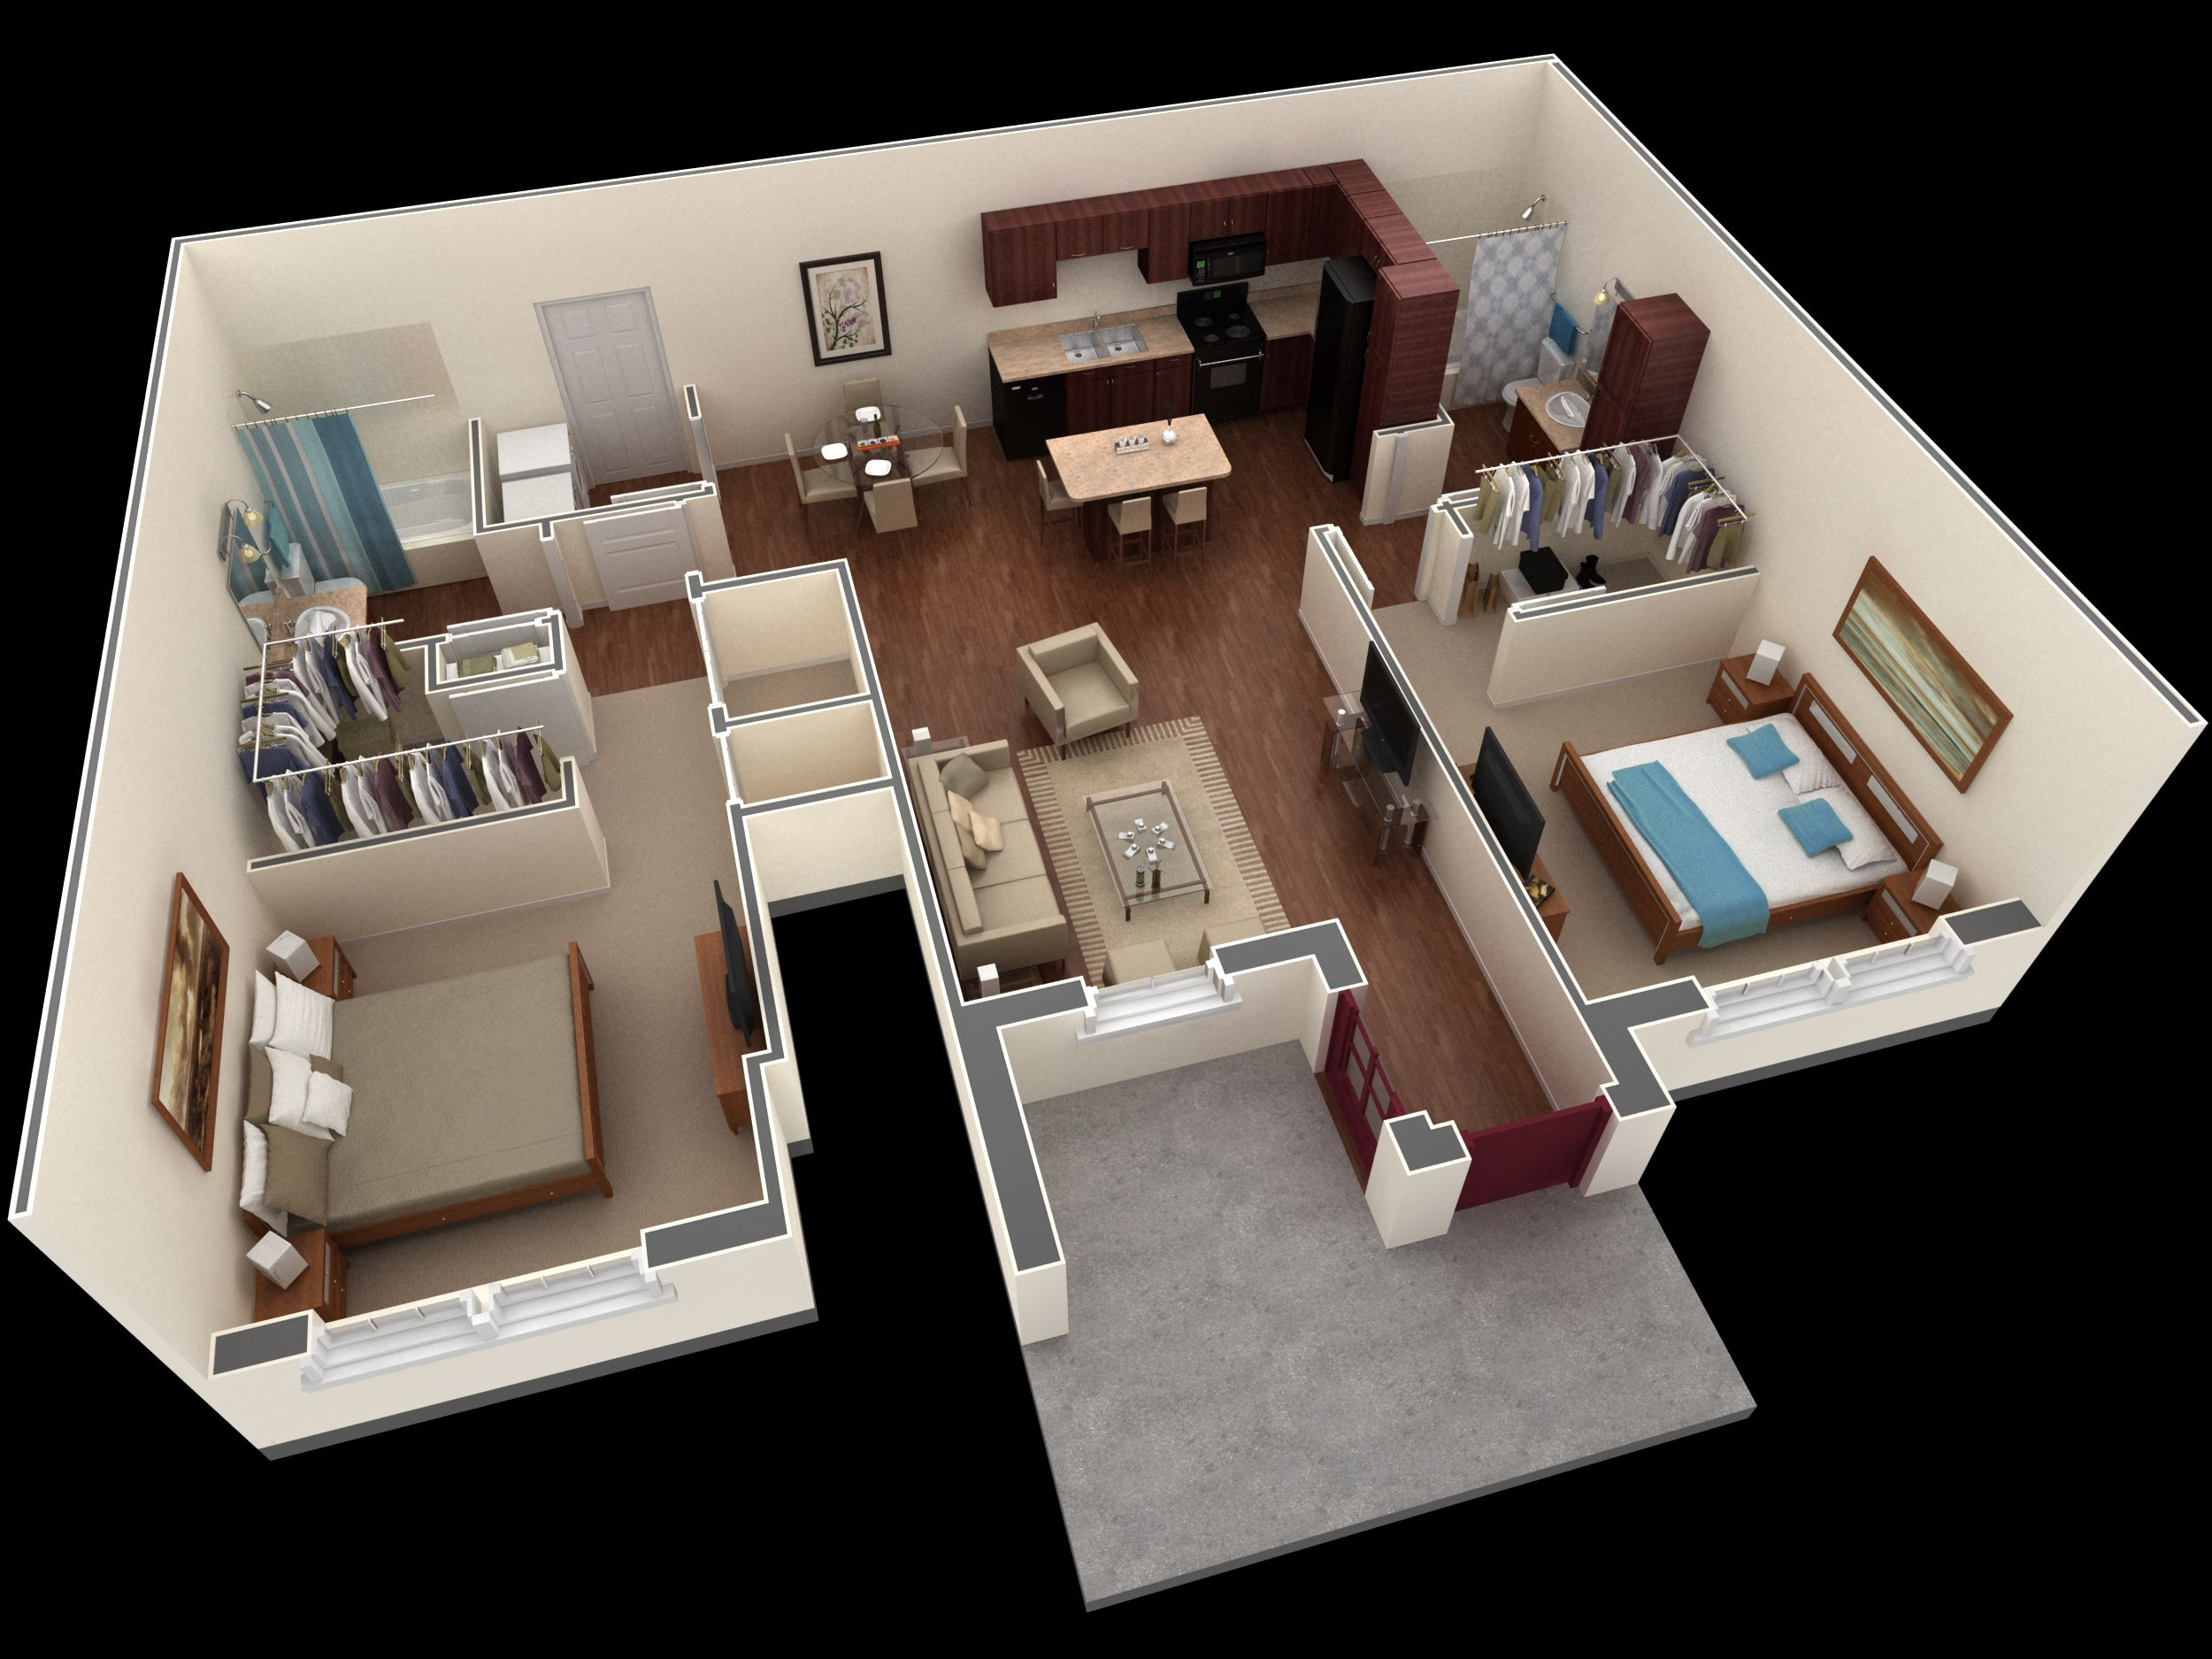 2 Bedroom 2 Bath 1137 Sf Apartment At Springs At Legacy Commons Apartments In Omaha Ne The Apartme Studio Apartment Floor Plans Small House Plans House Plans